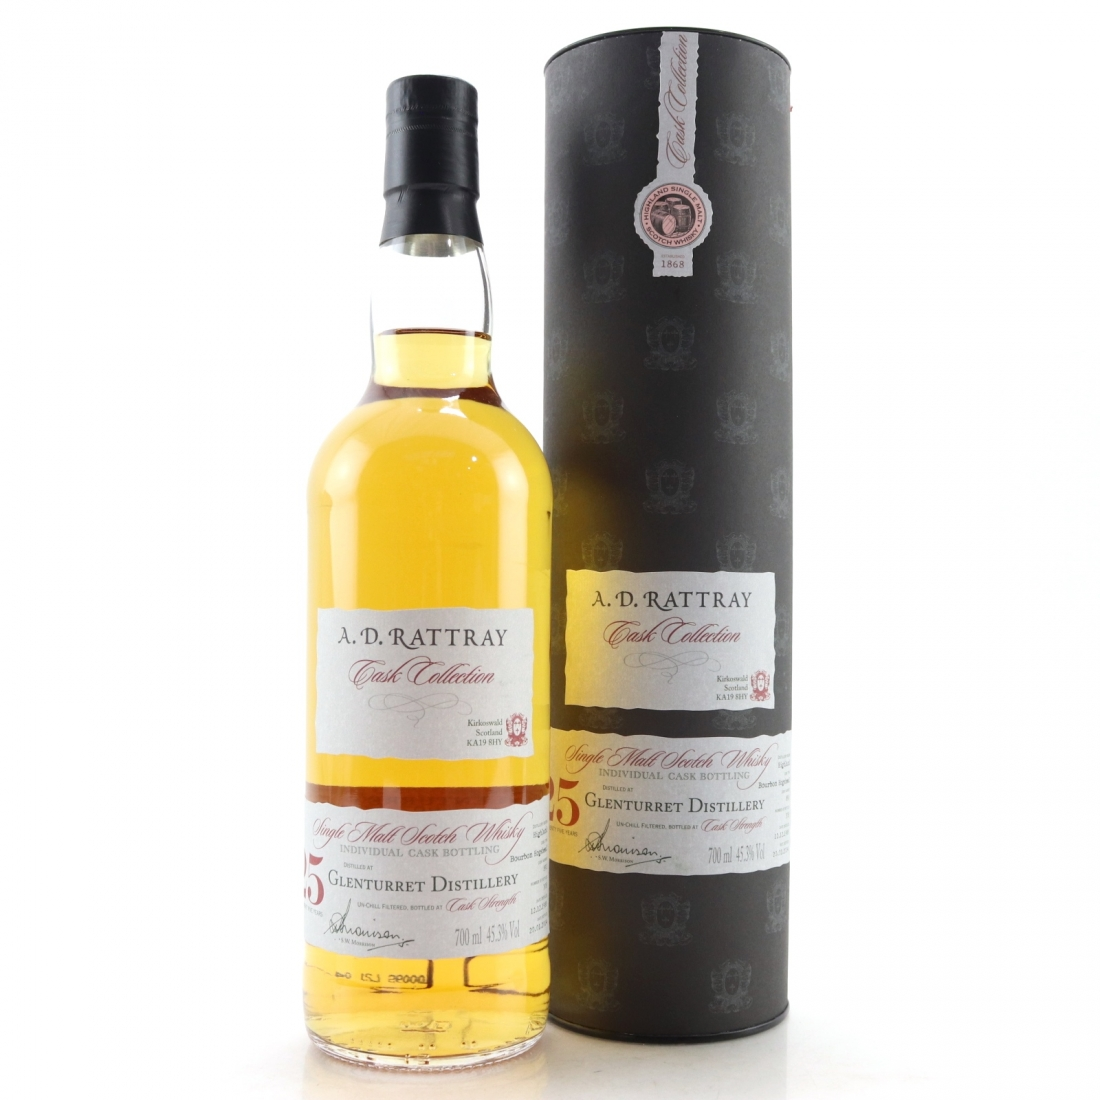 Glenturret 1988 A.D. Rattray 25 Year Old